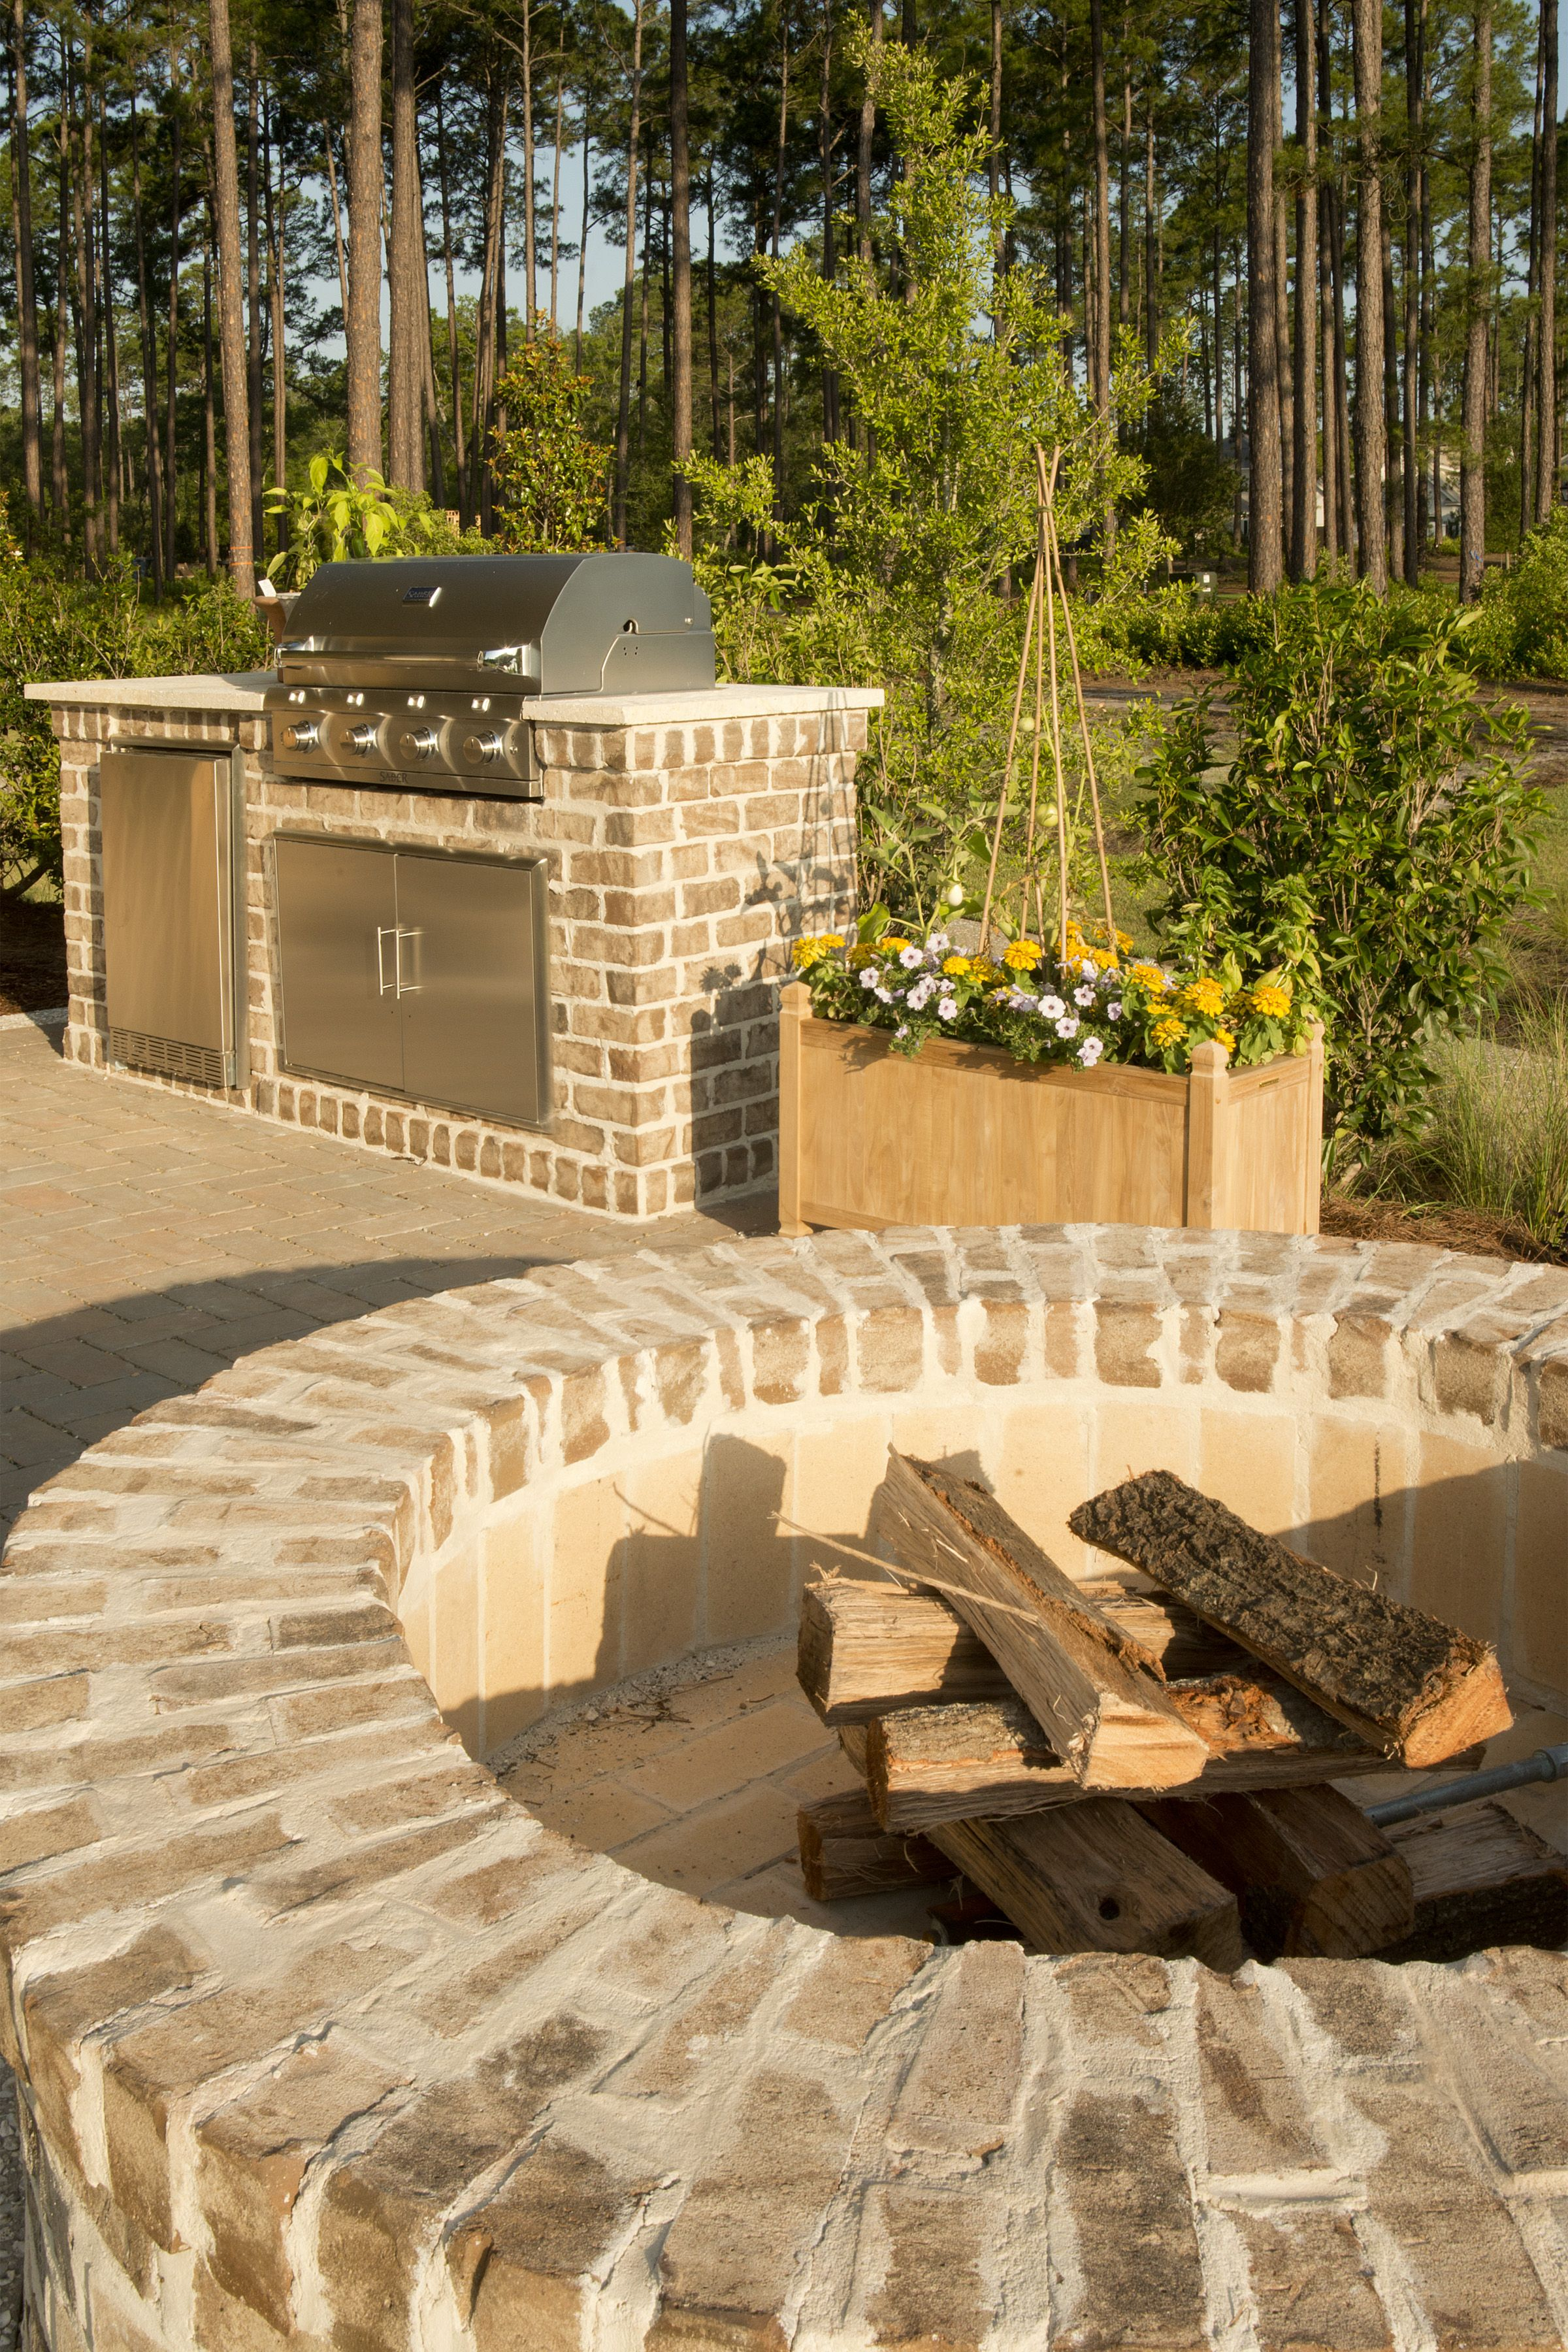 d5e910daad3499ab2e99314254801d27 Top Result 50 Awesome Cost Of Outdoor Fireplace Picture 2018 Zat3